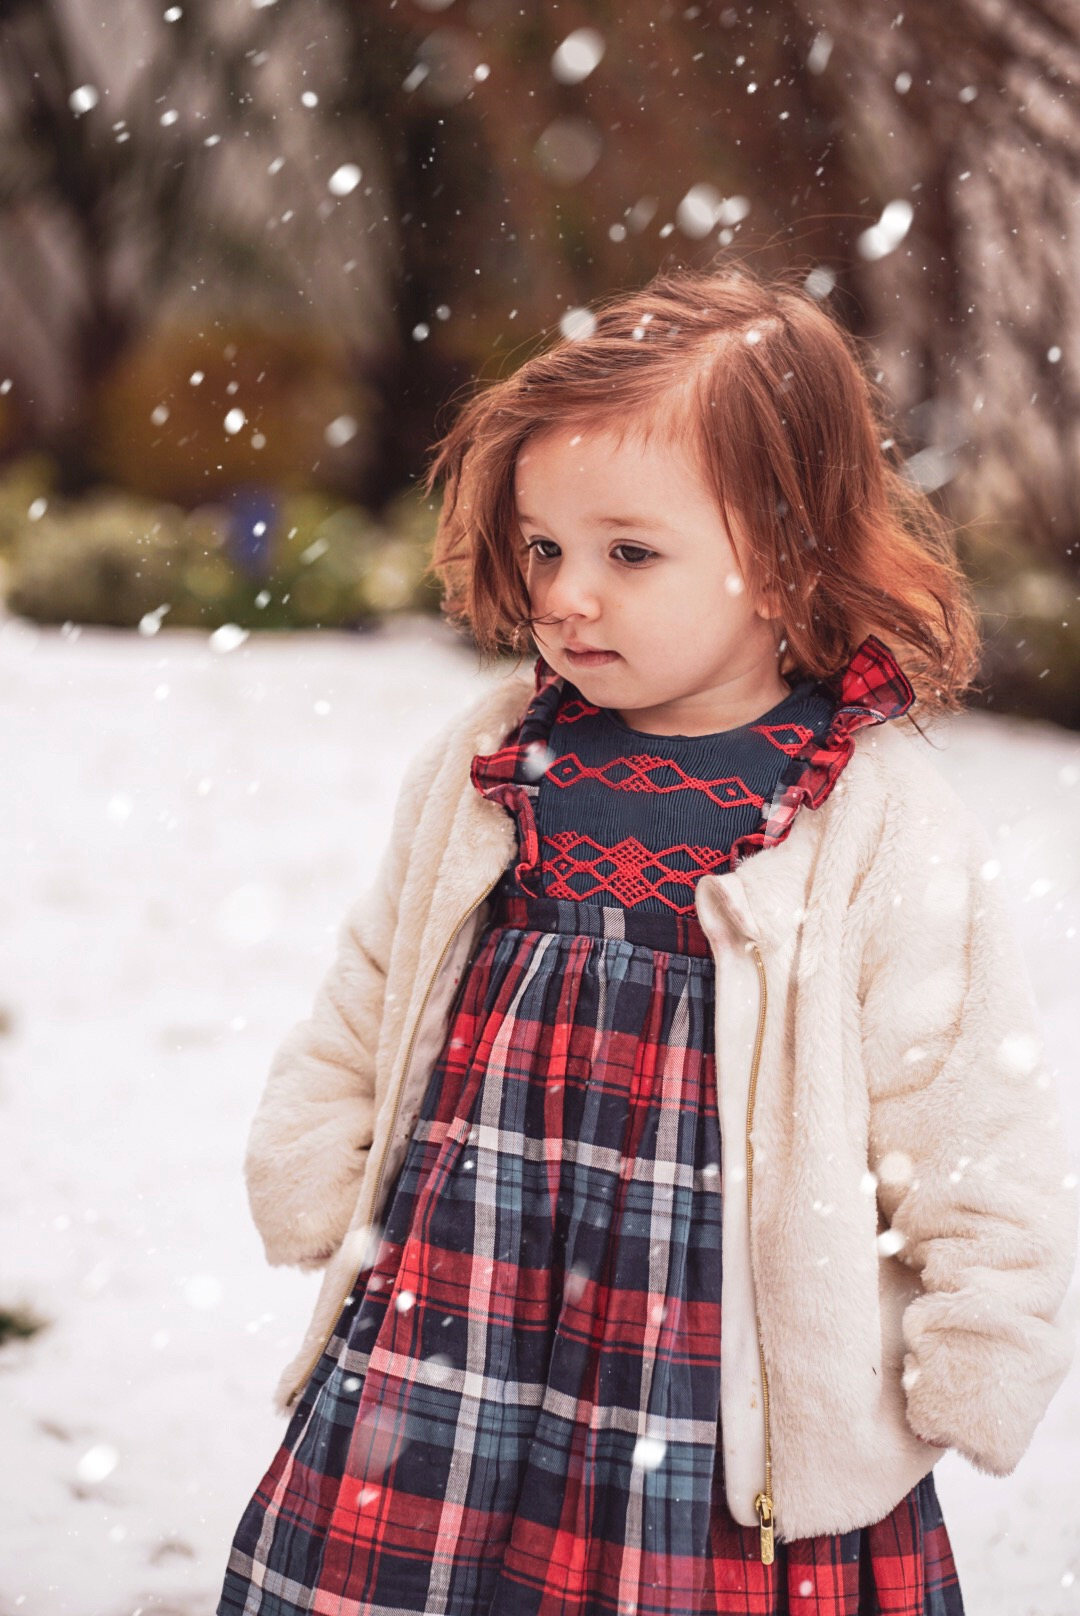 Amelie playing in the snow in her handmade Ninon smocked dress